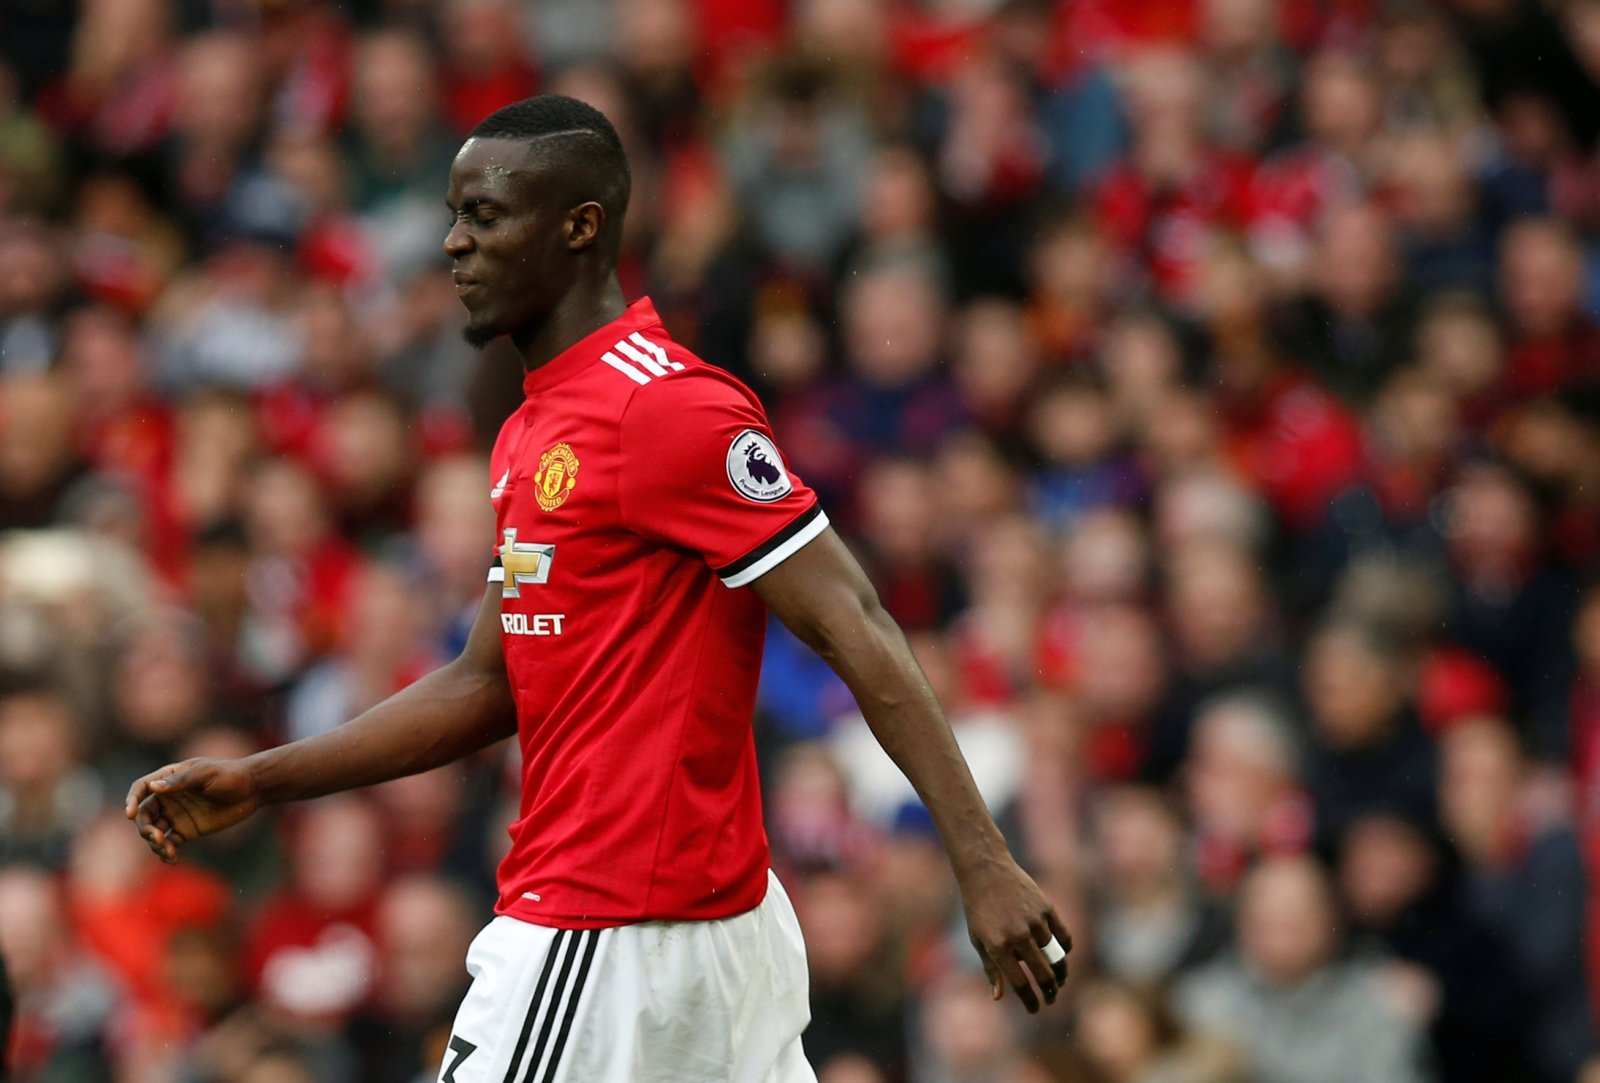 Eric Bailly could be the defensive rock Tottenham's new White Hart Lane needs